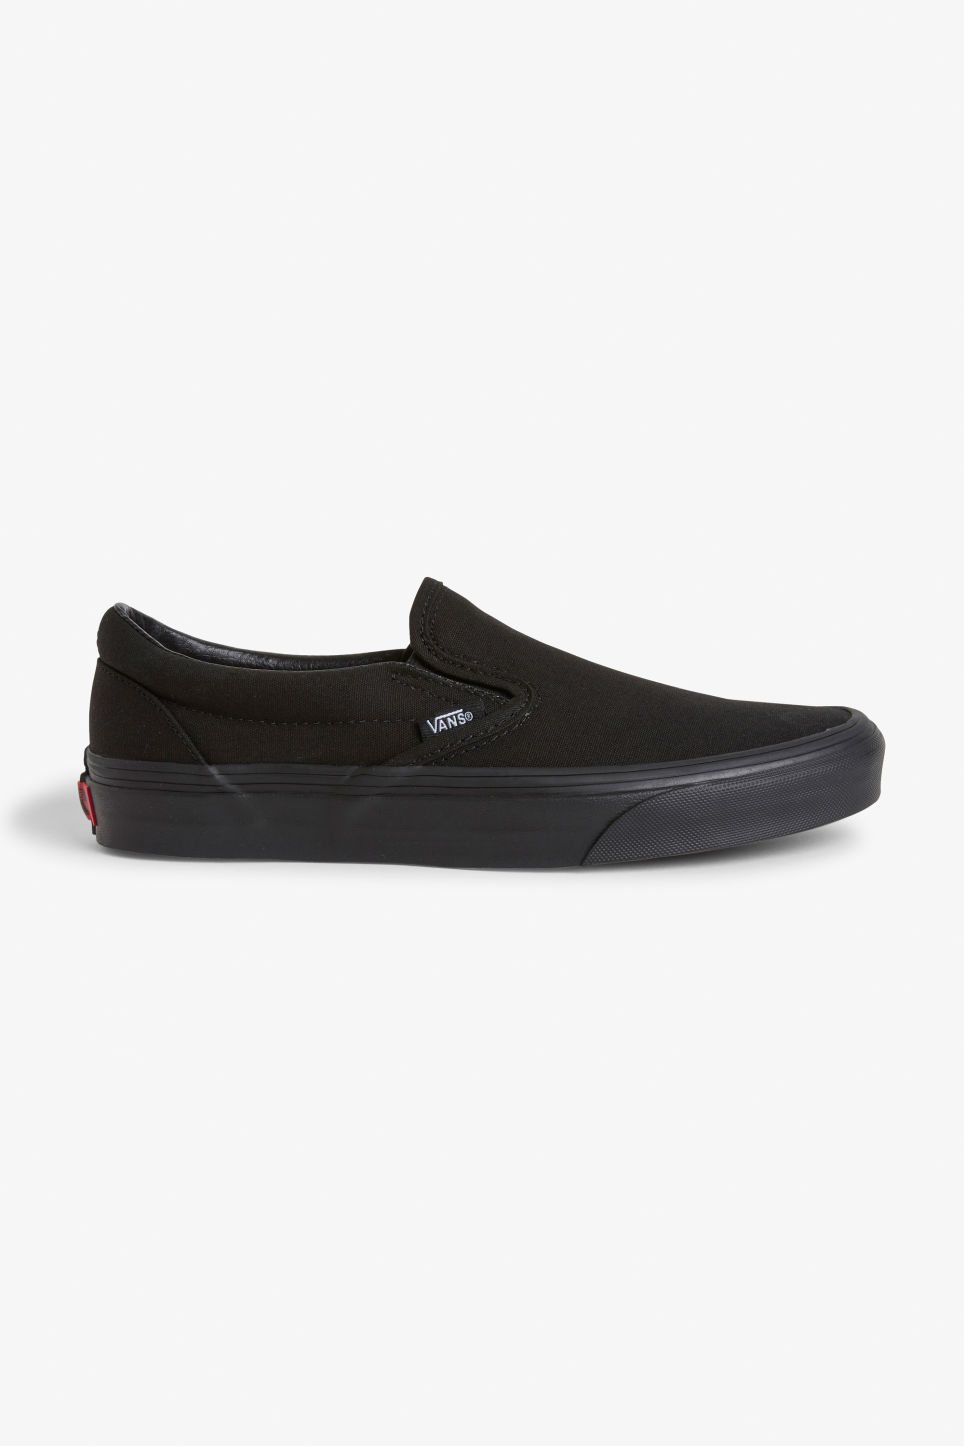 Detailed image of Monki vans slip on  in black